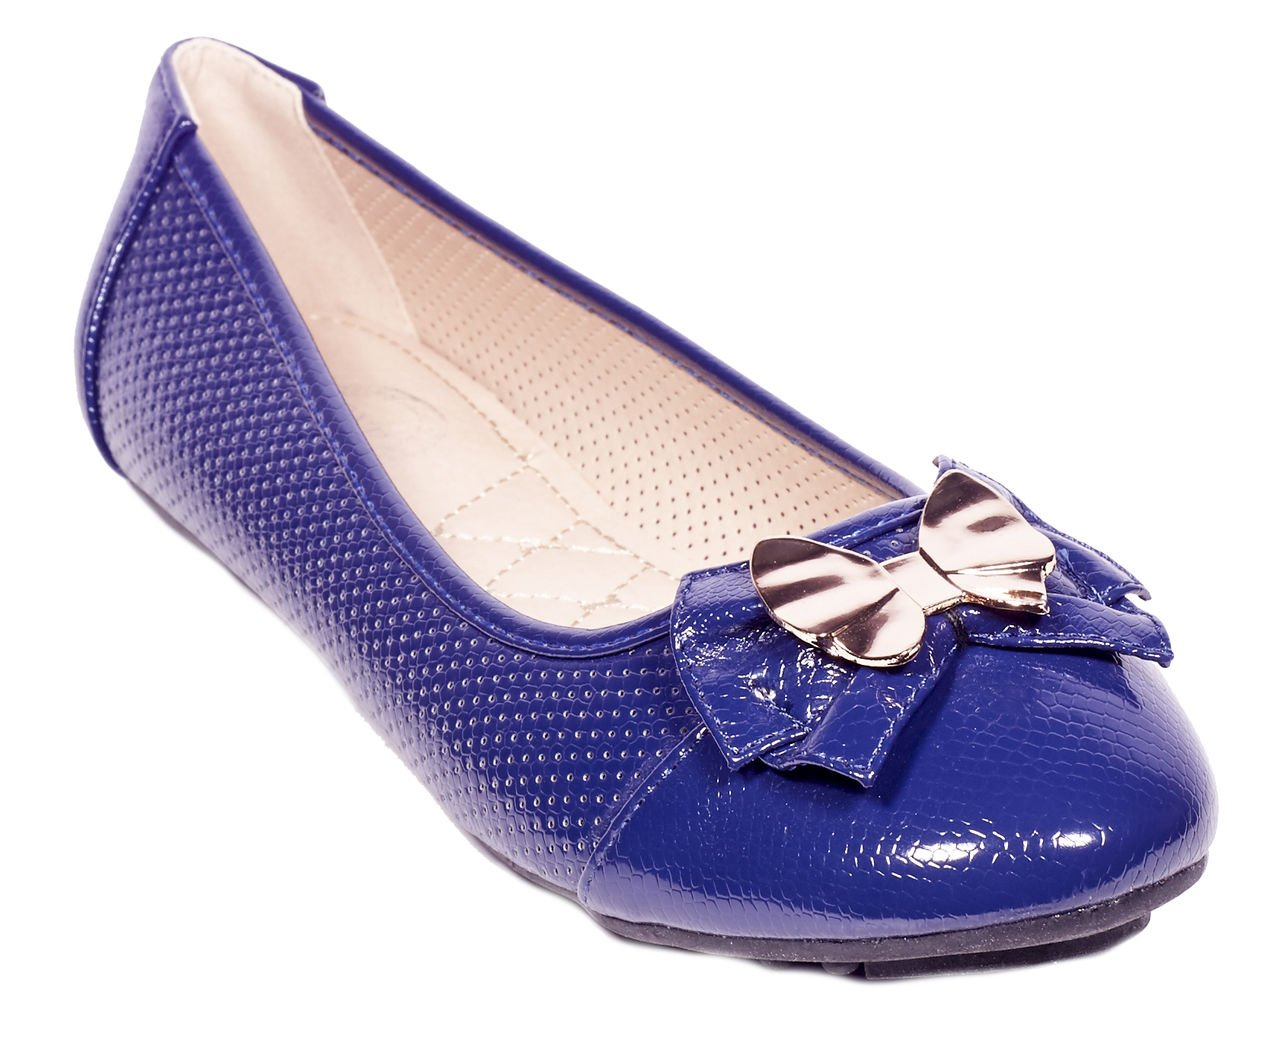 ONE Women Ballerina Flats Shoes, Bow & Buckles Accents, B-2045, Navy, 8